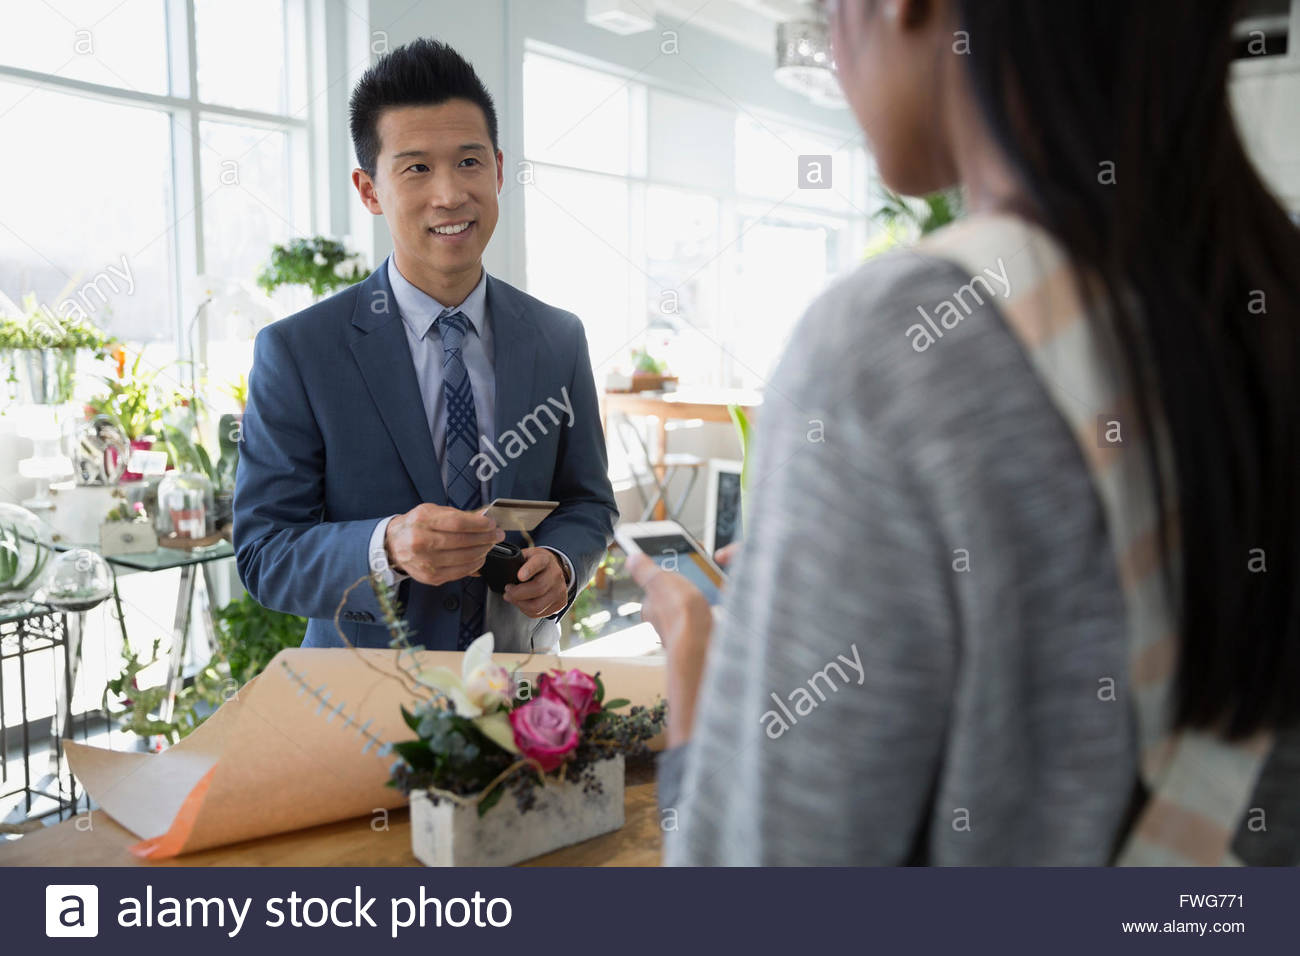 Man paying florist for bouquet in flower shop - Stock Image